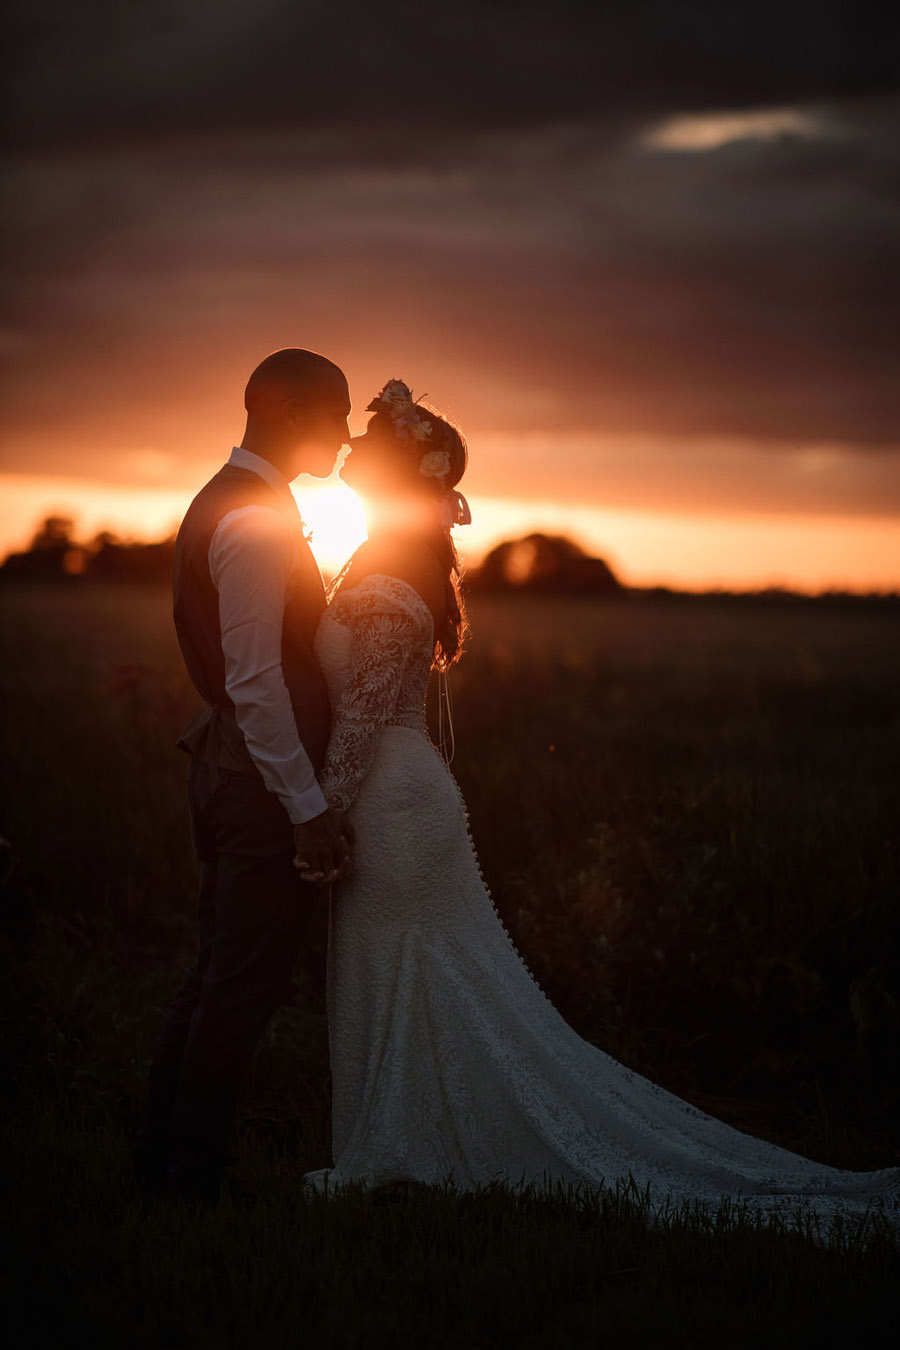 Evening sunset wedding inspiration at Willow Grange Farm, with Becky Harley Photography (55)